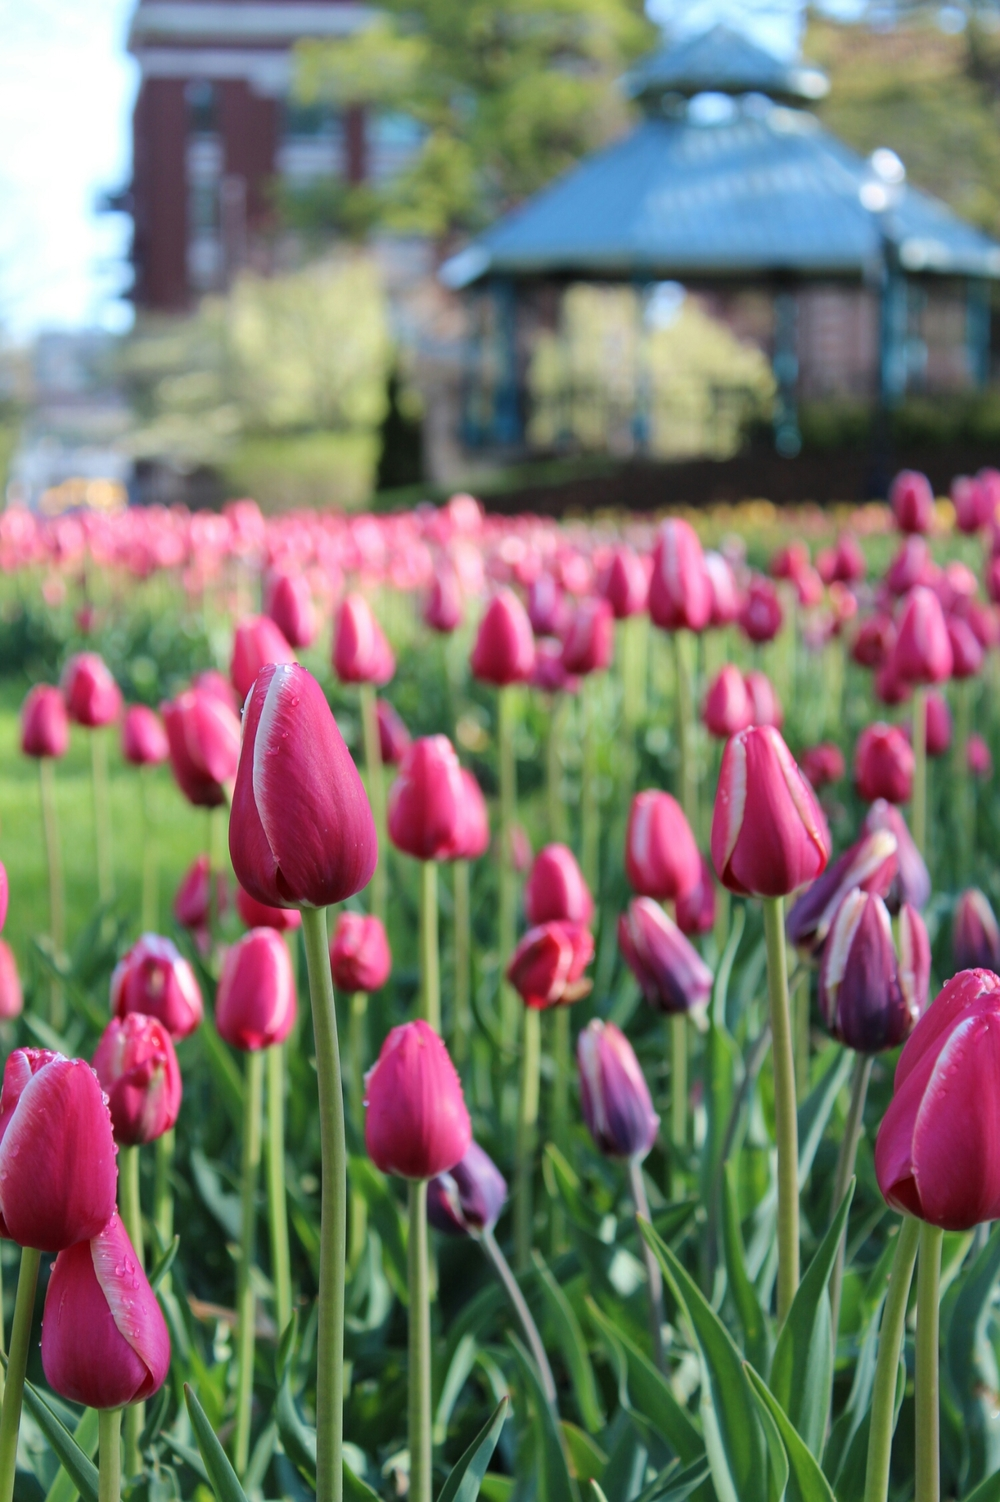 *There werelots of tulips in Holland